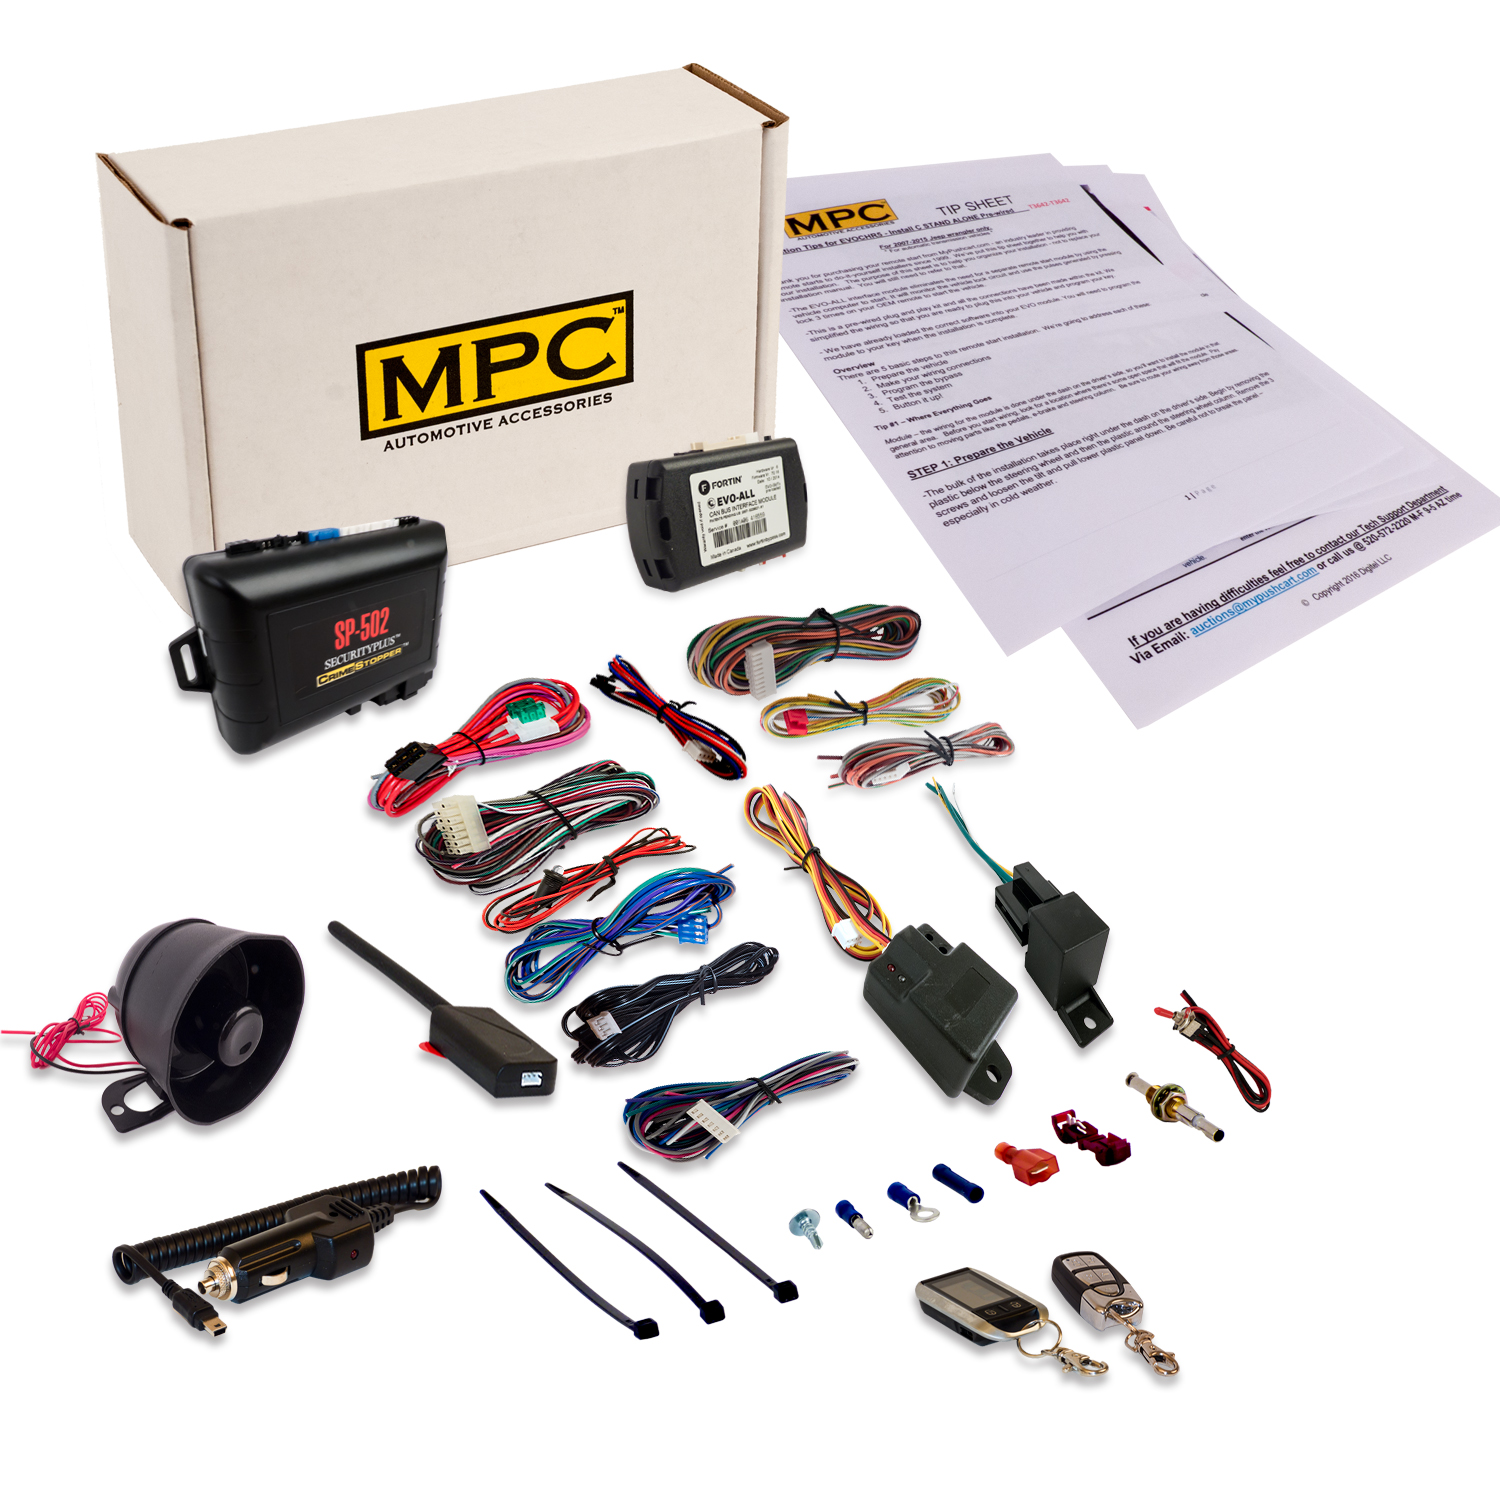 MPC Deluxe 2-Way Remote Starter & Car Alarm w/ Keyless By...